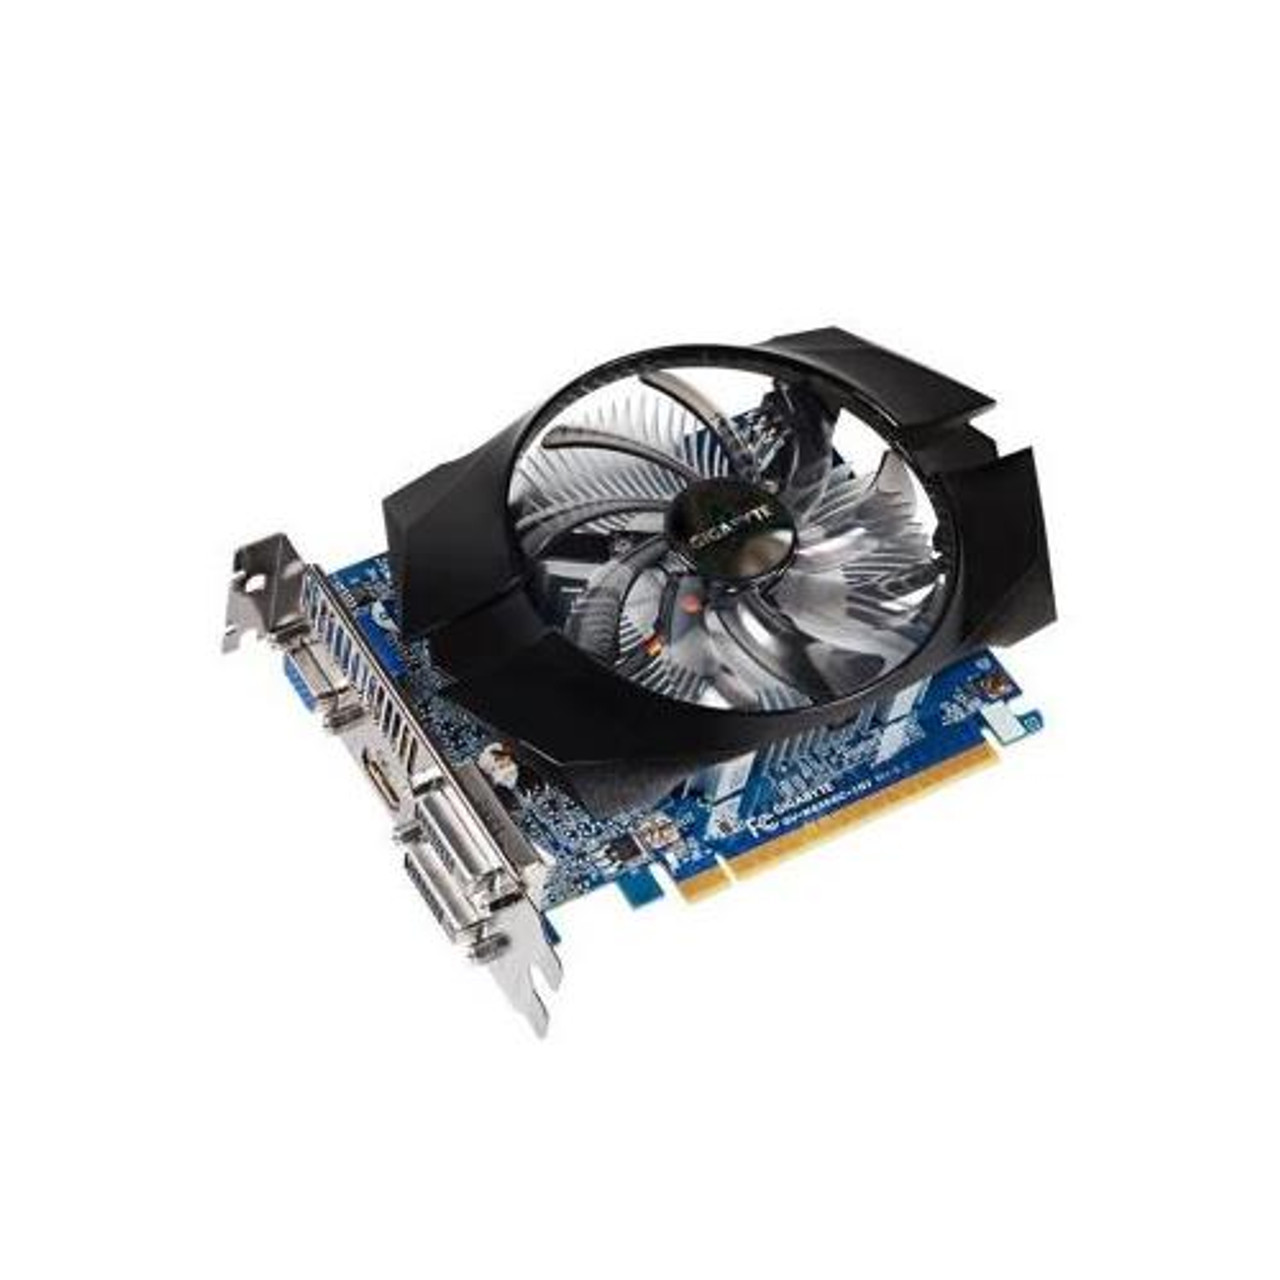 GV-N650OC-2GI Gigabyte GeForce GTX 650 Graphic Card 1.11 GHz